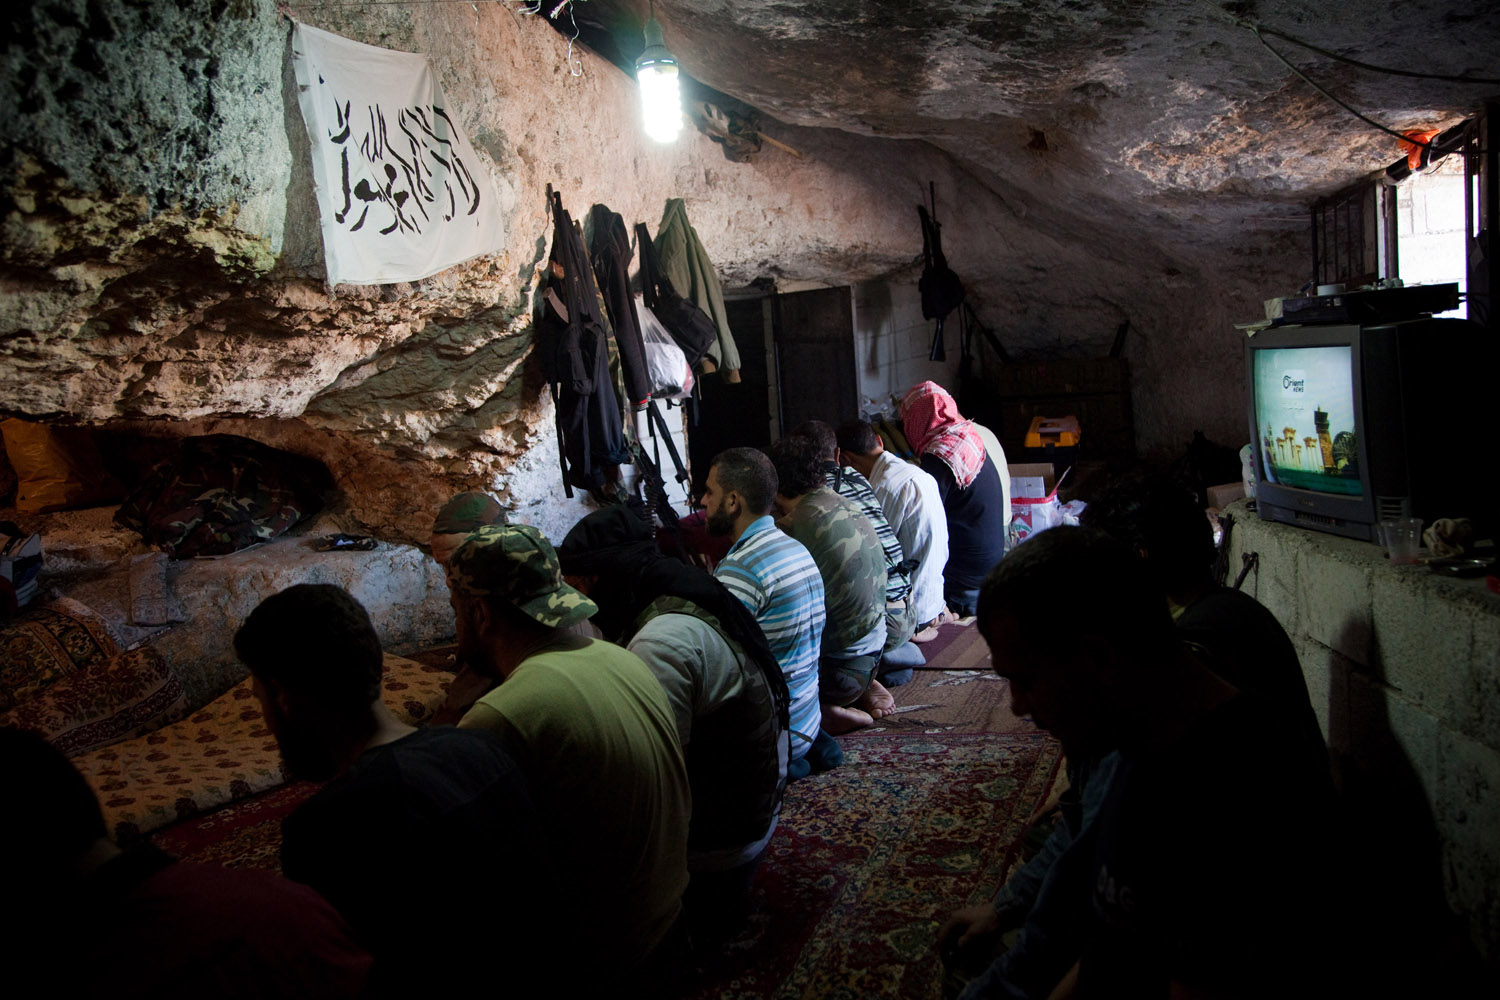 Free Syrian Army fighters pray in a cave in the mountains outside of Sarmadda, a town near the Syrian border, on June 7, 2012. The FSA are often ill-equipped to fight against the tanks, rockets and mortars used by the Syrian Army.